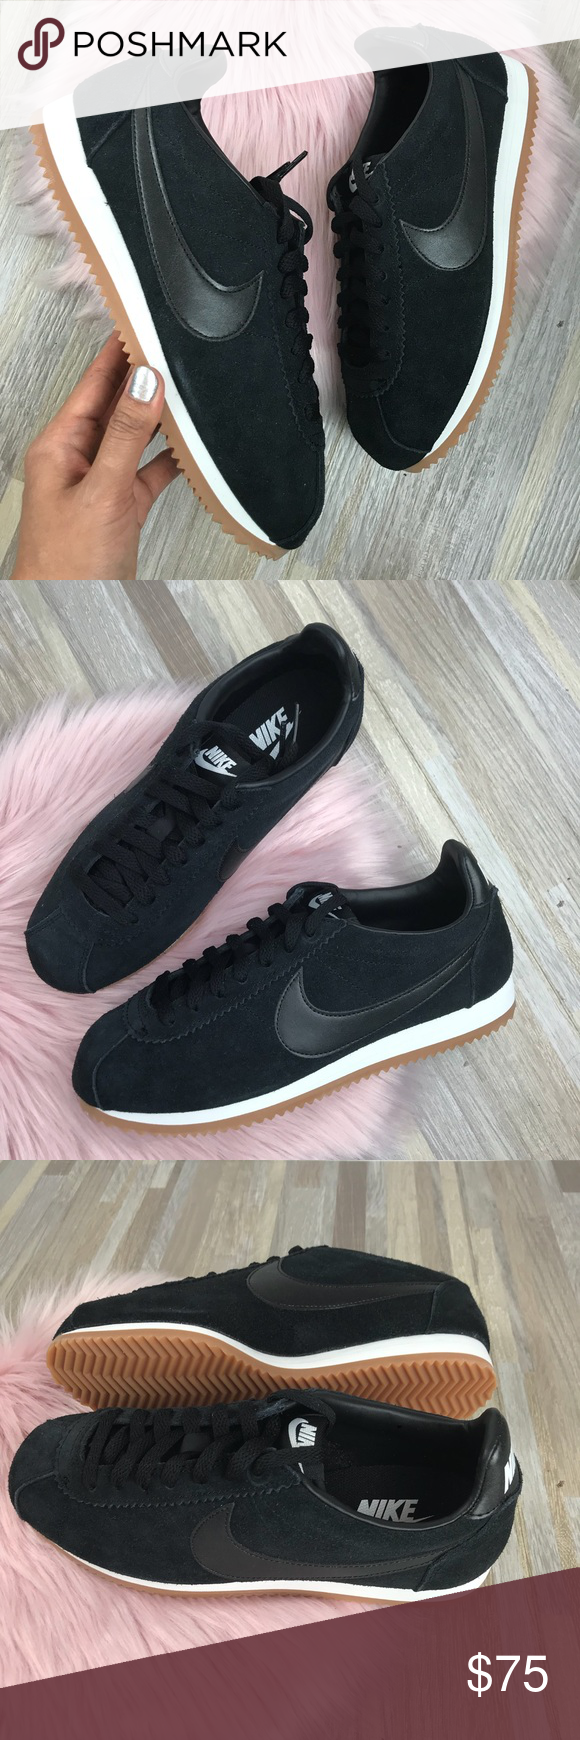 brand new c26ed 3dbcc Nike classic Cortez suede 🦅 • Brand new in box no lid • Black suede •  Women s size 8 Nike Shoes Sneakers